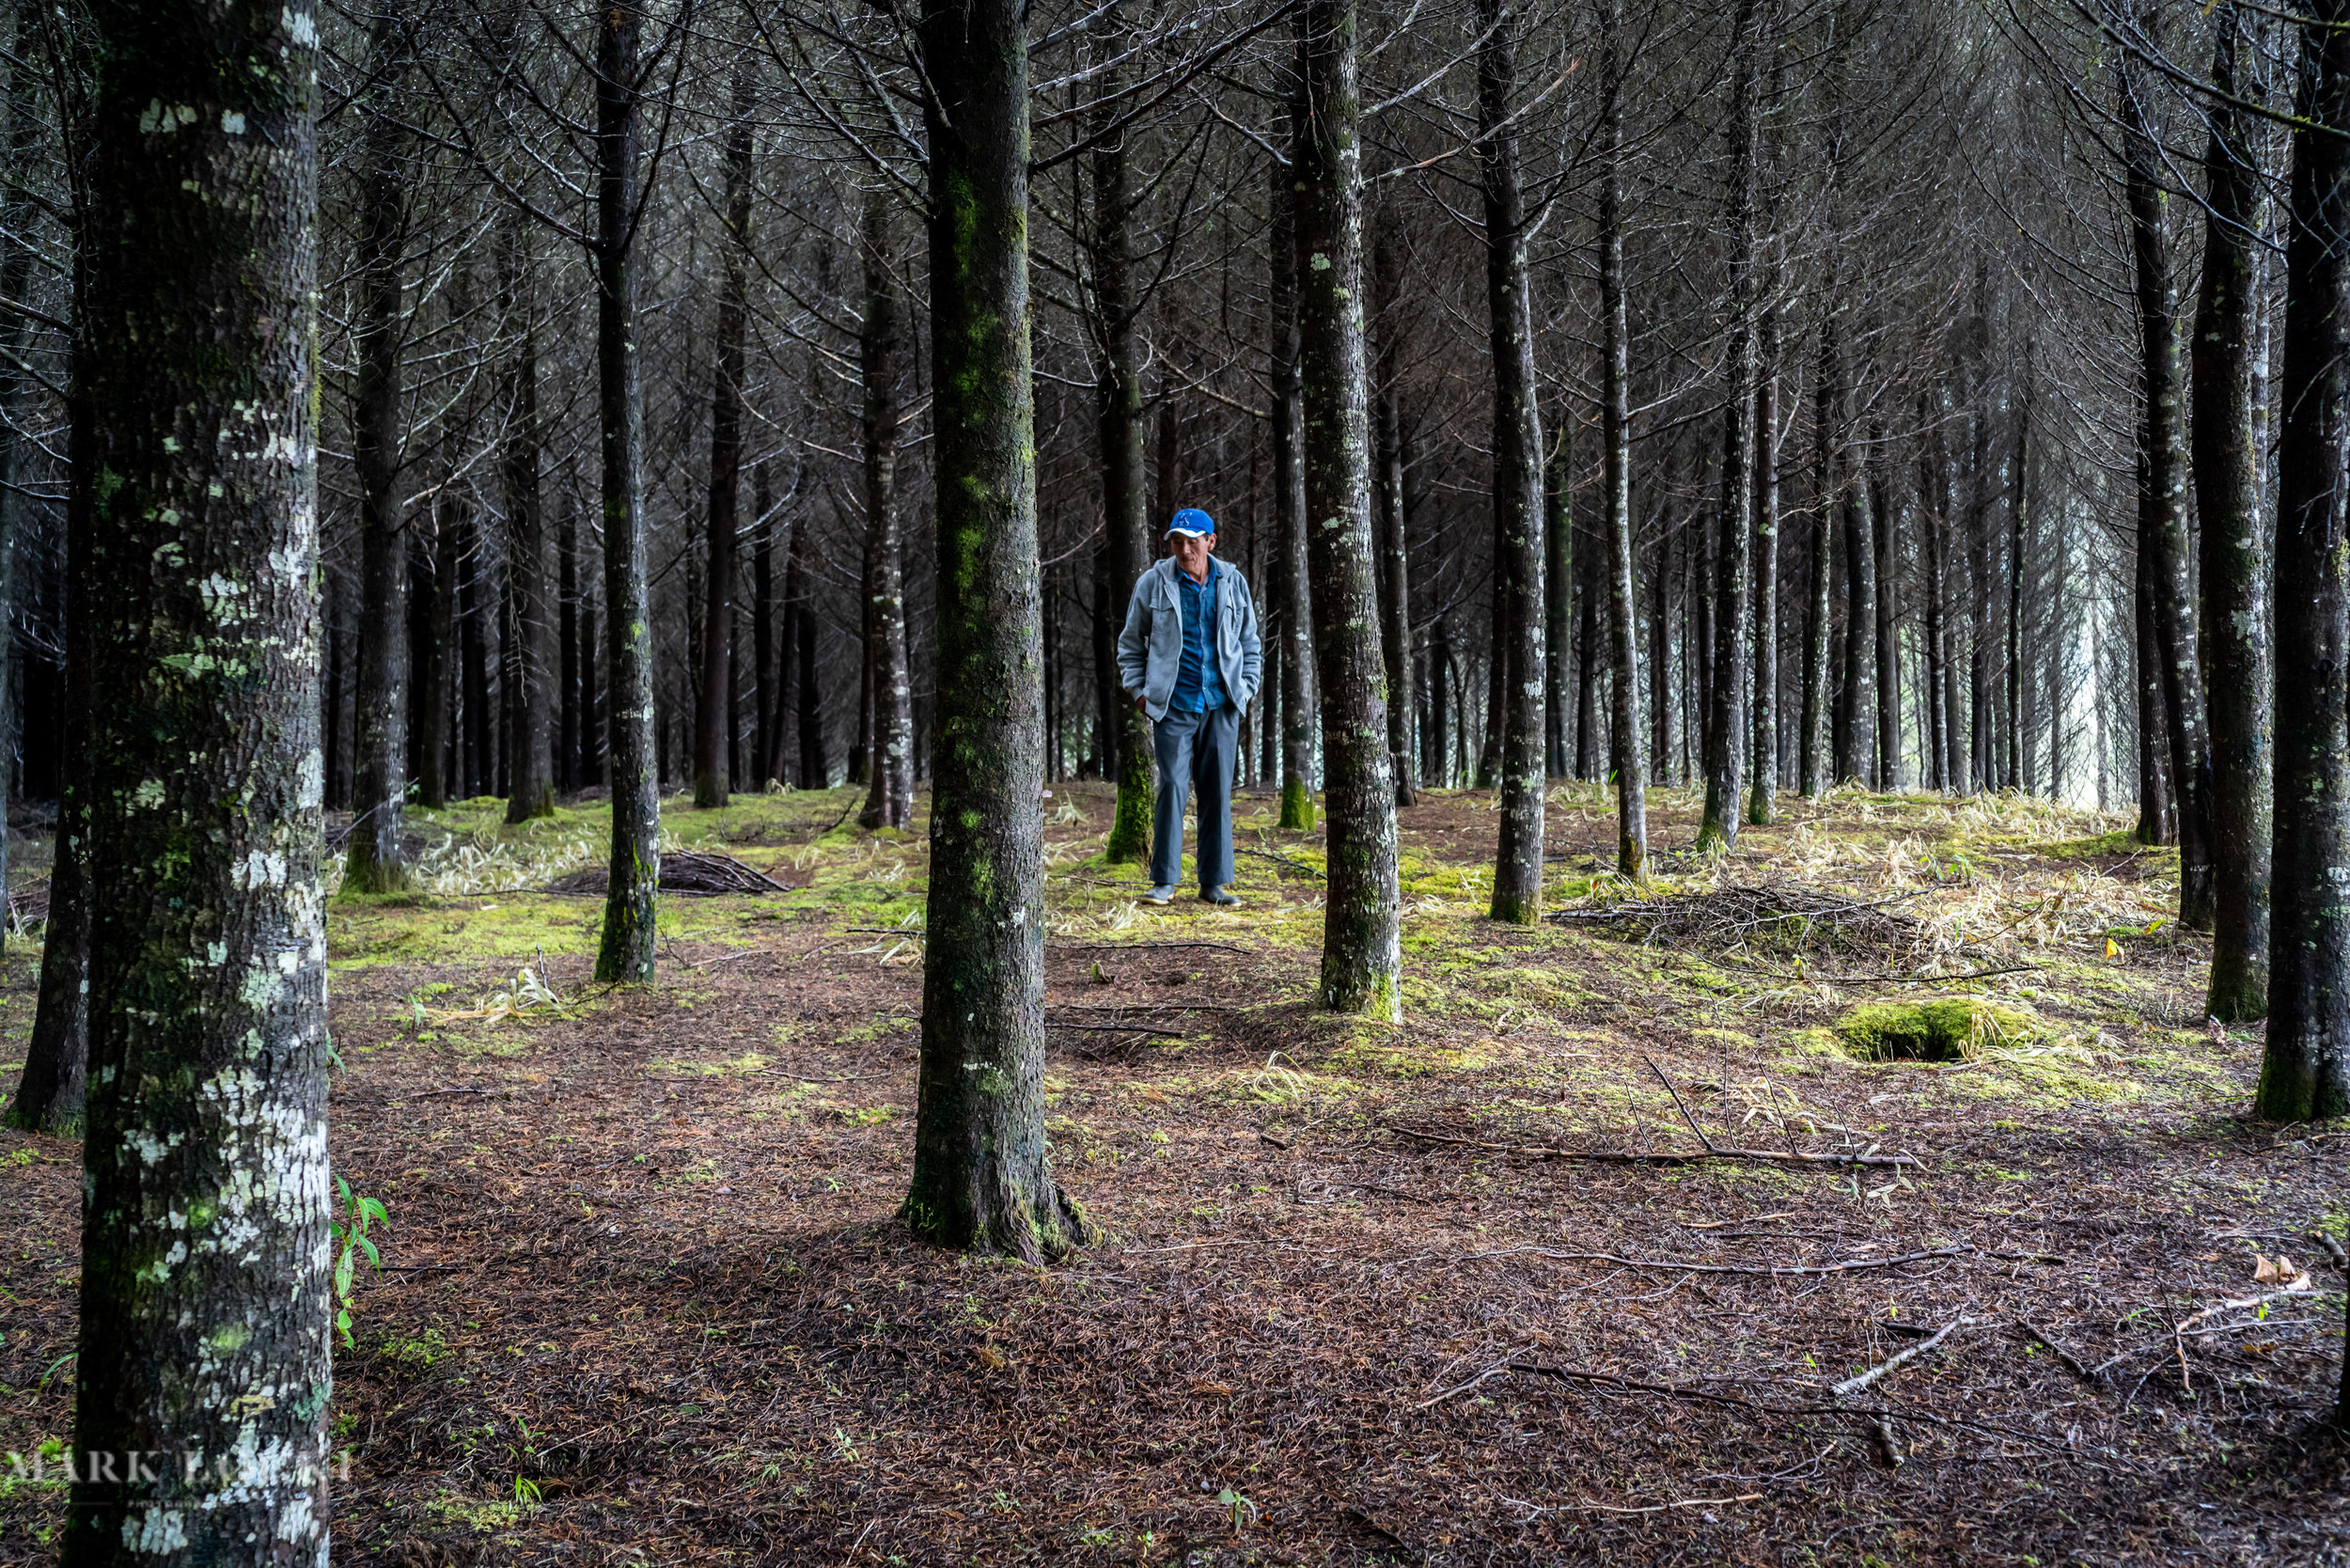 A man stands in a forest that was replanted after a wildfire, Tziscao, Chiapas, Mexico